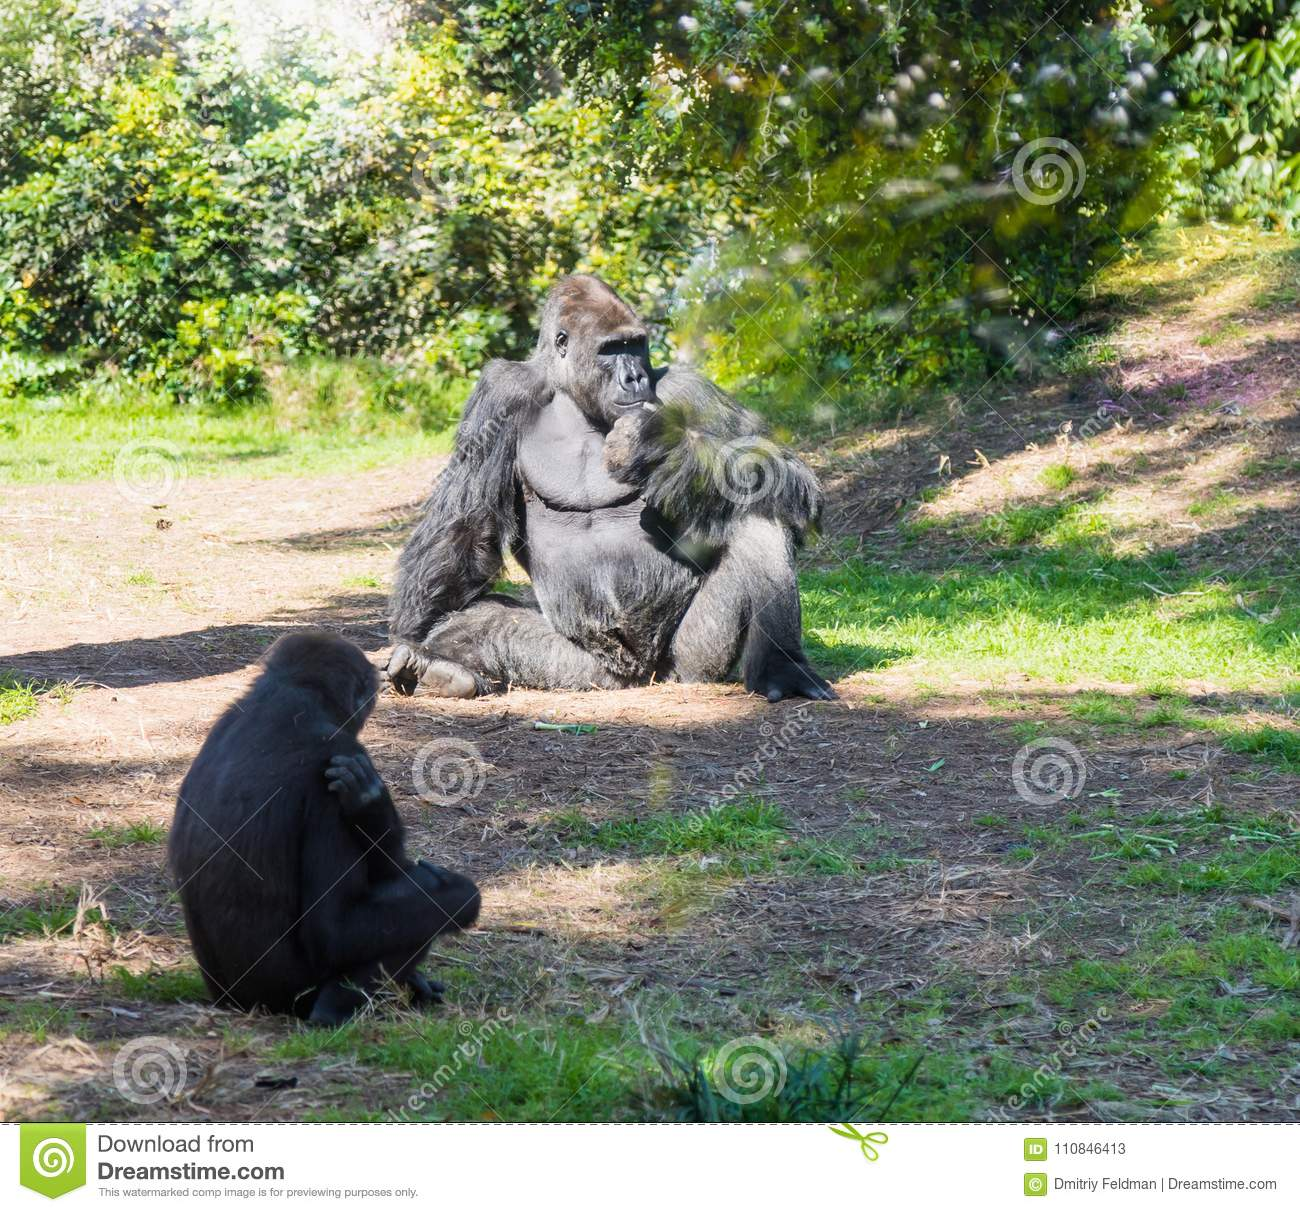 Free Ape Sex Videos the male and female gorilla sit on the ground and rest on a